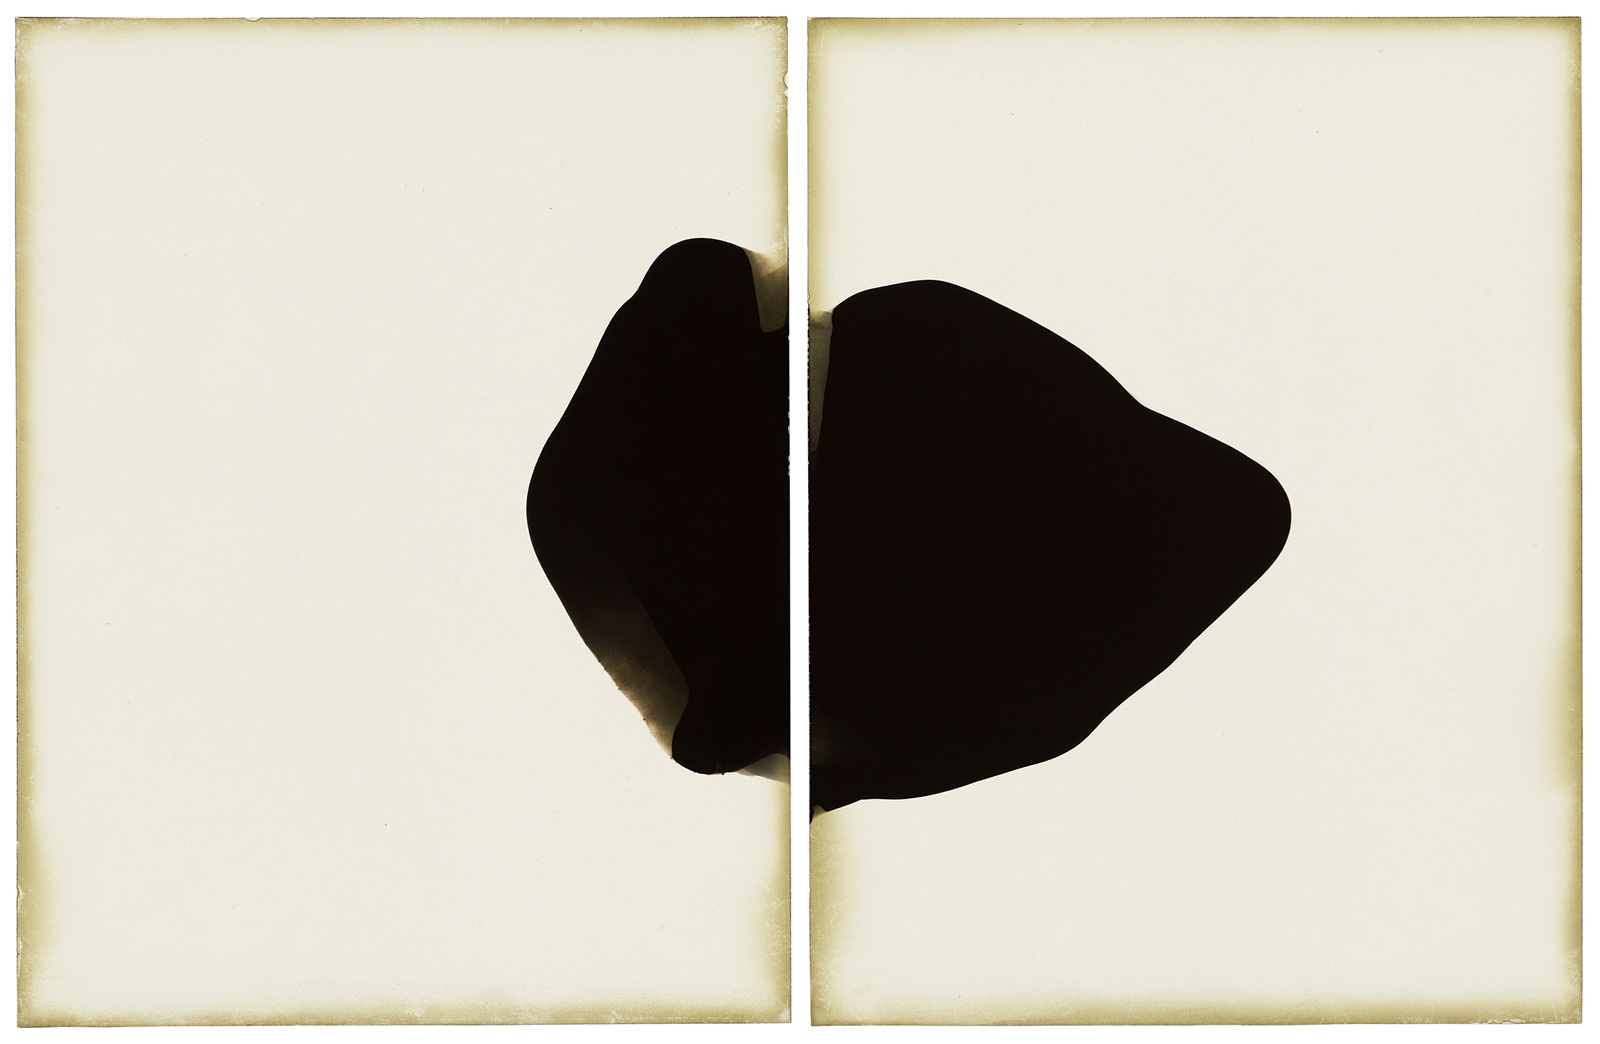 Alison Rossiter,  Haloid Platina, exact expiration date unknown, about 1915, processed 2010